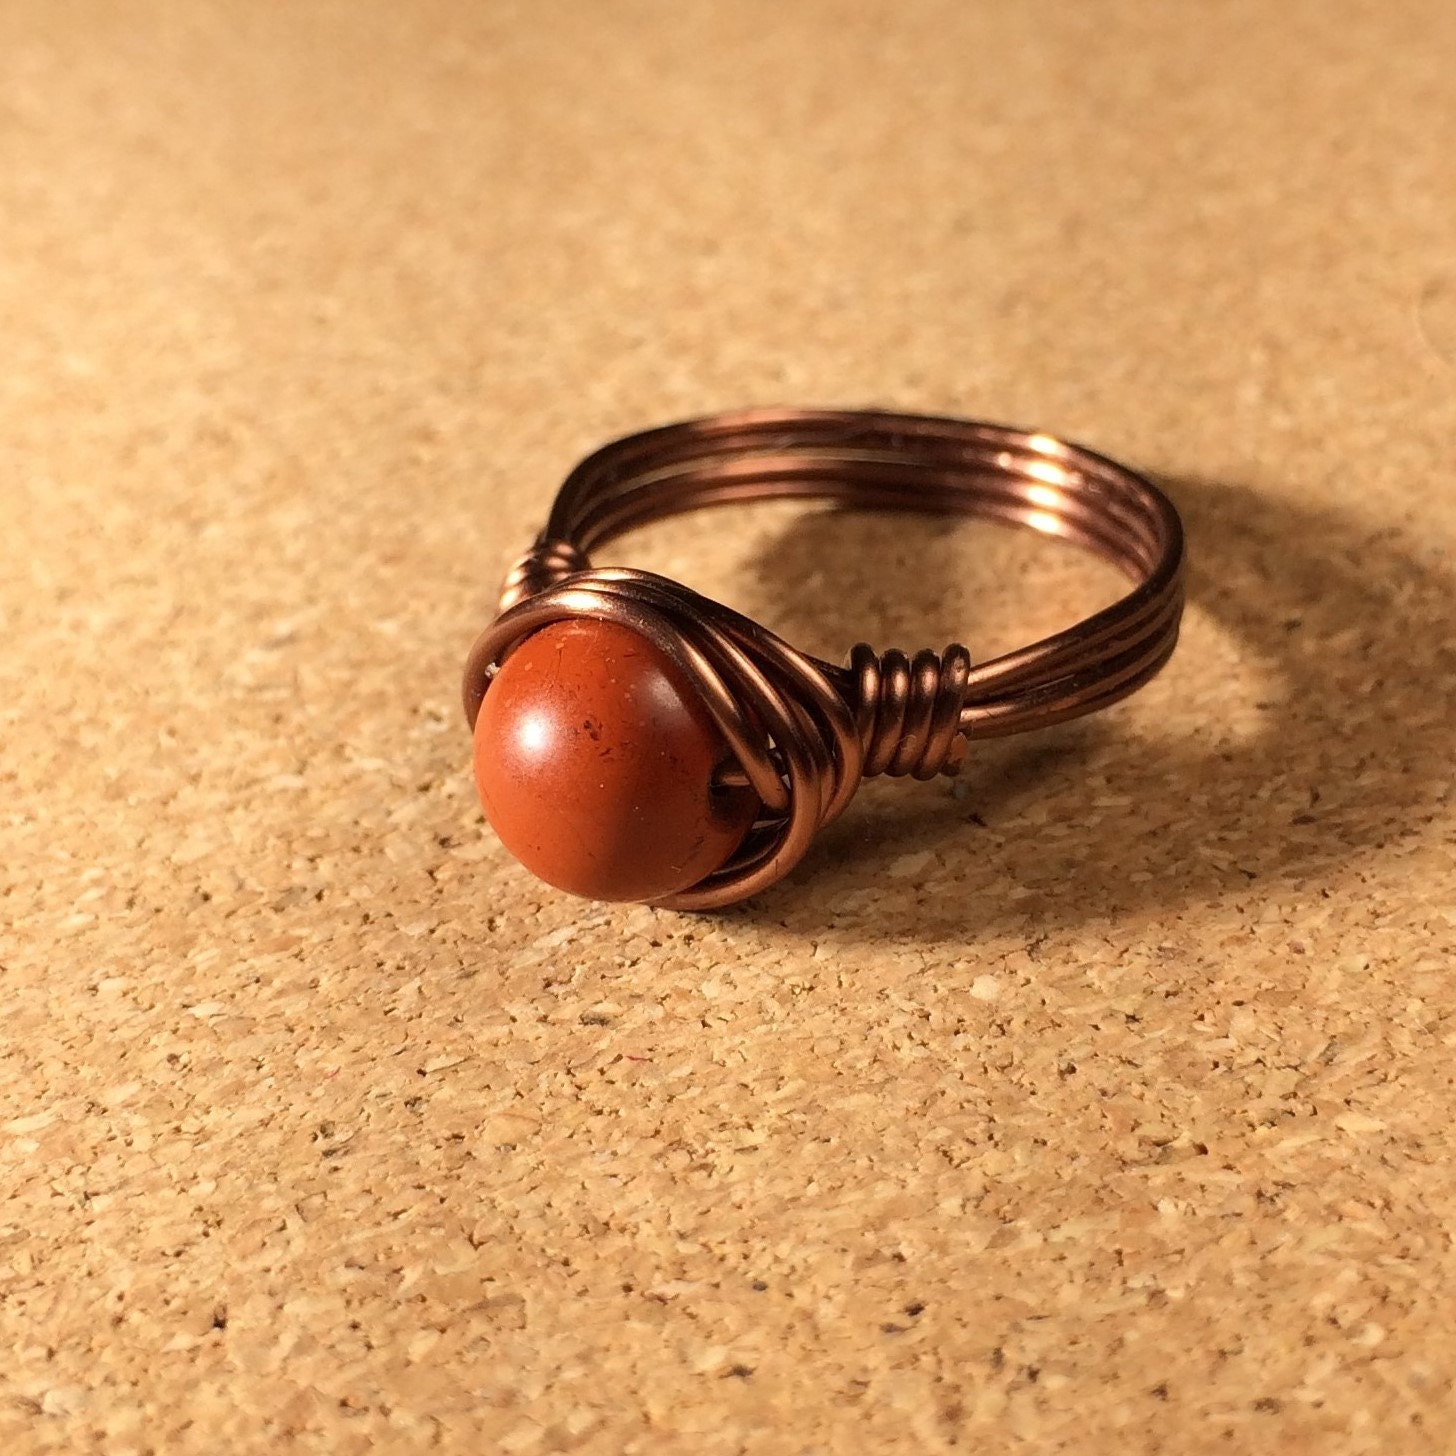 3 8 Red Stone : Size red jasper stone ring antique copper wire wrapped